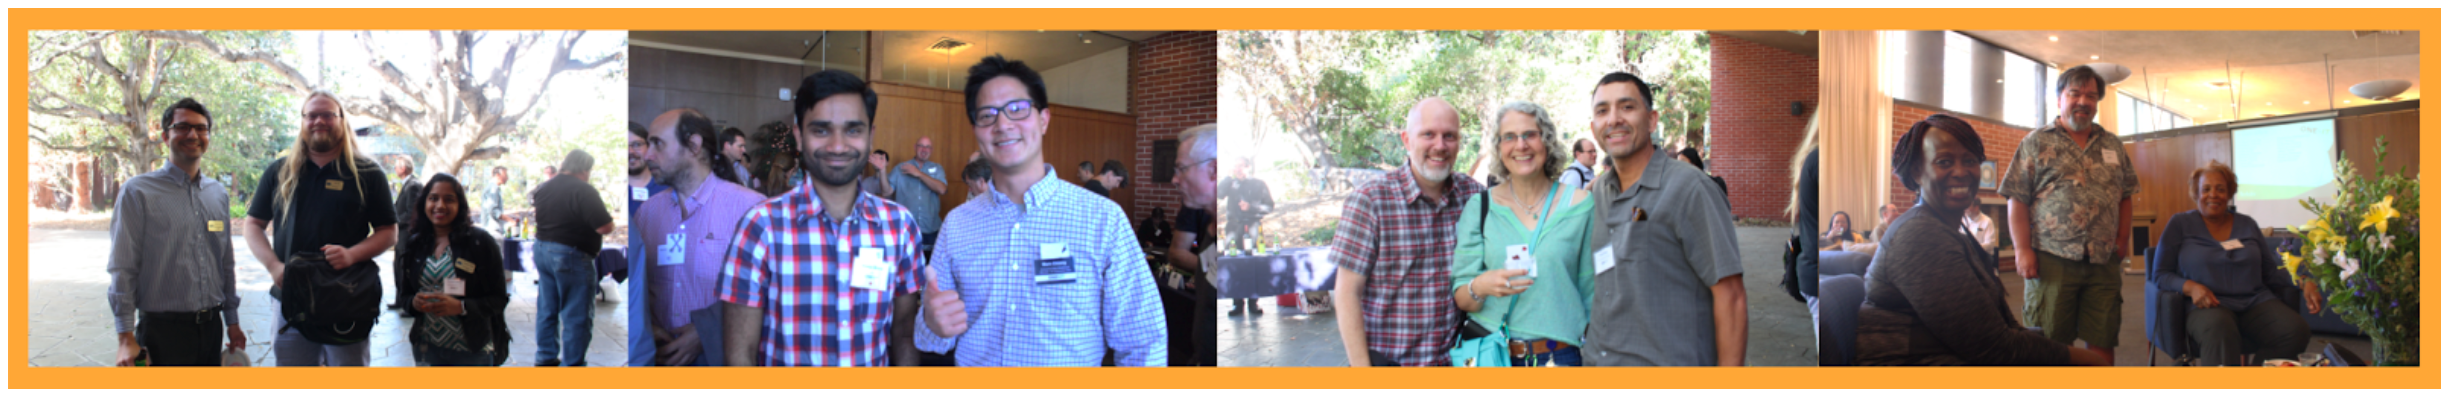 photos of One IT members at last year's staff appreciation event